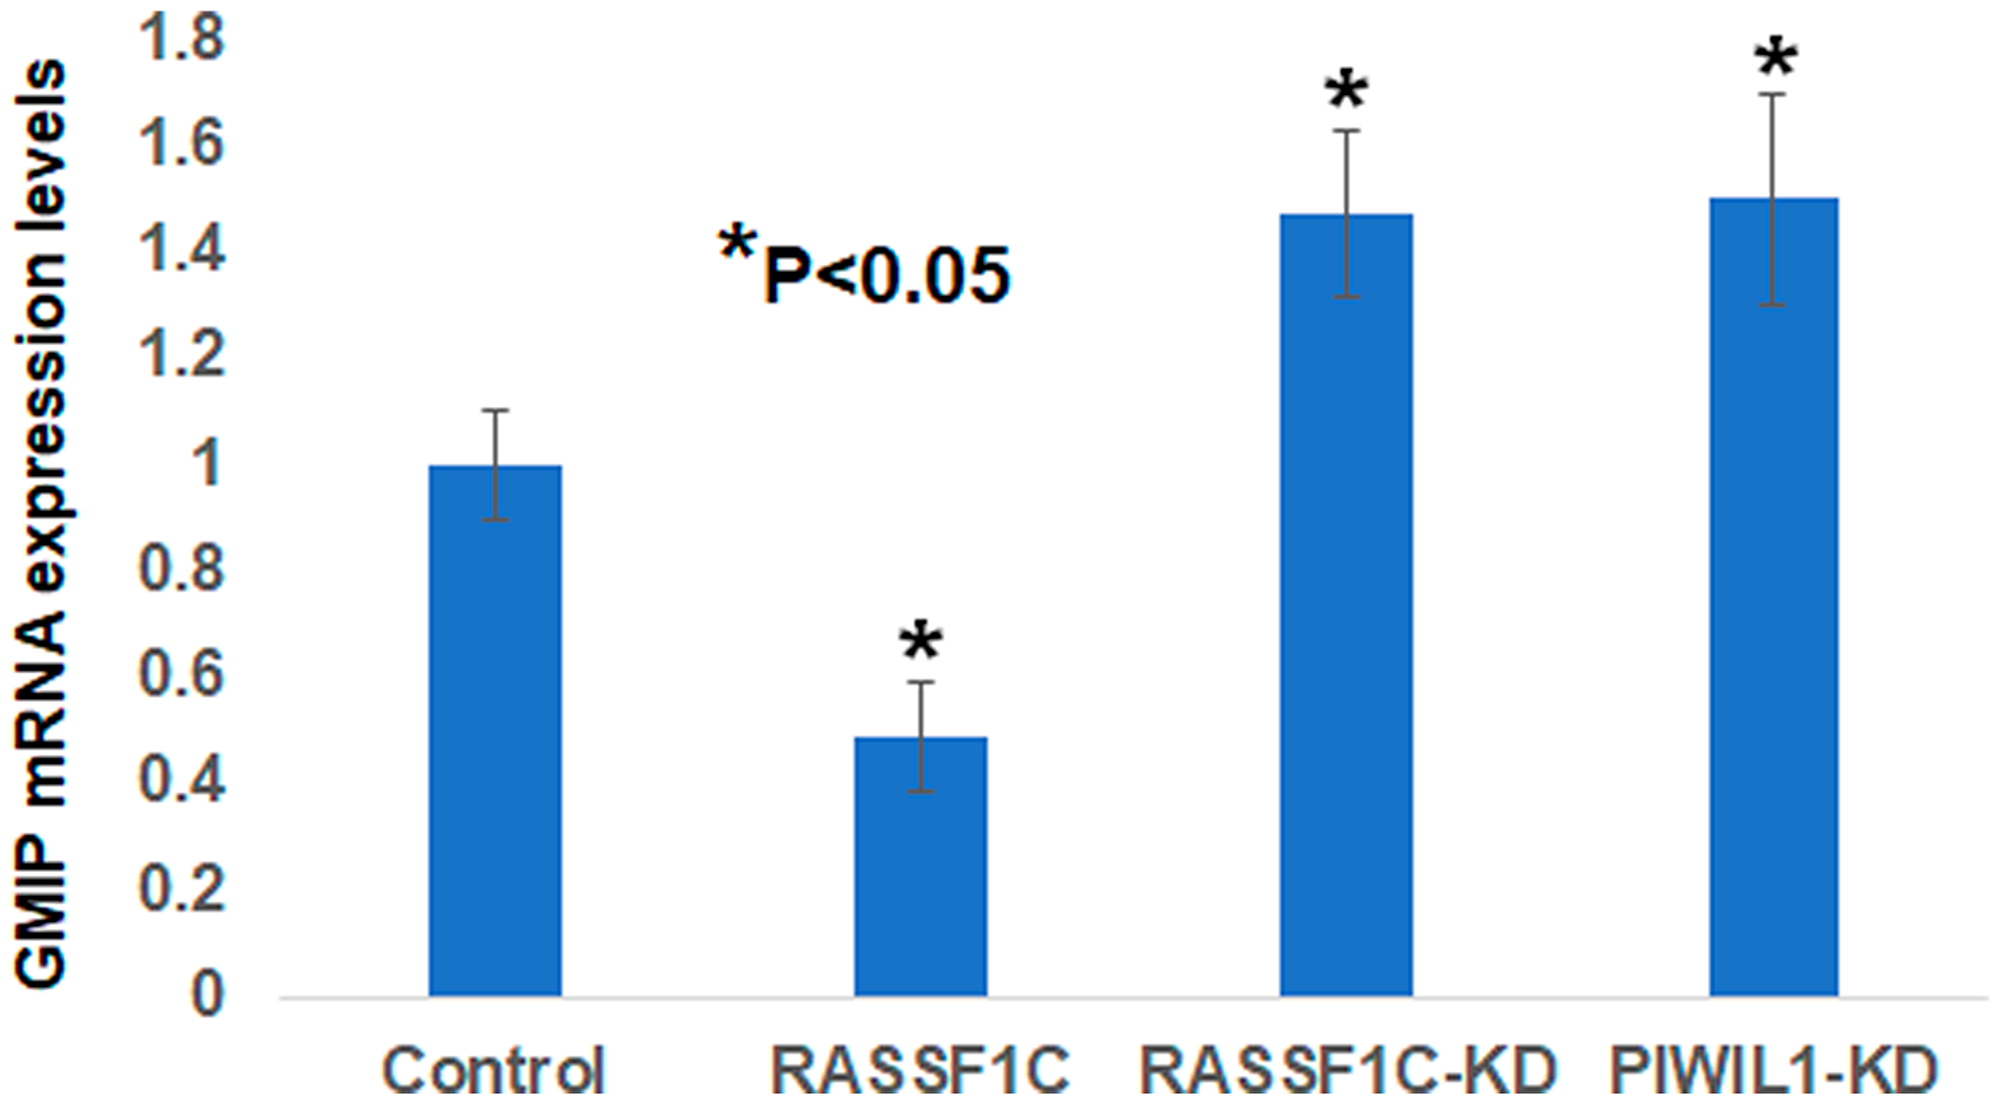 Validation of GMIP gene expression by RT-PCR in NCI-H1299 lung cancer cells over-expressing vector backbone (H1299-BB) over-expressing RASSF1C (H1299-1C), H1299 cells with RASSF1C knockdown (RASSF1C-KD), and PIWIL1-knockdown (PIWIL1-KD).